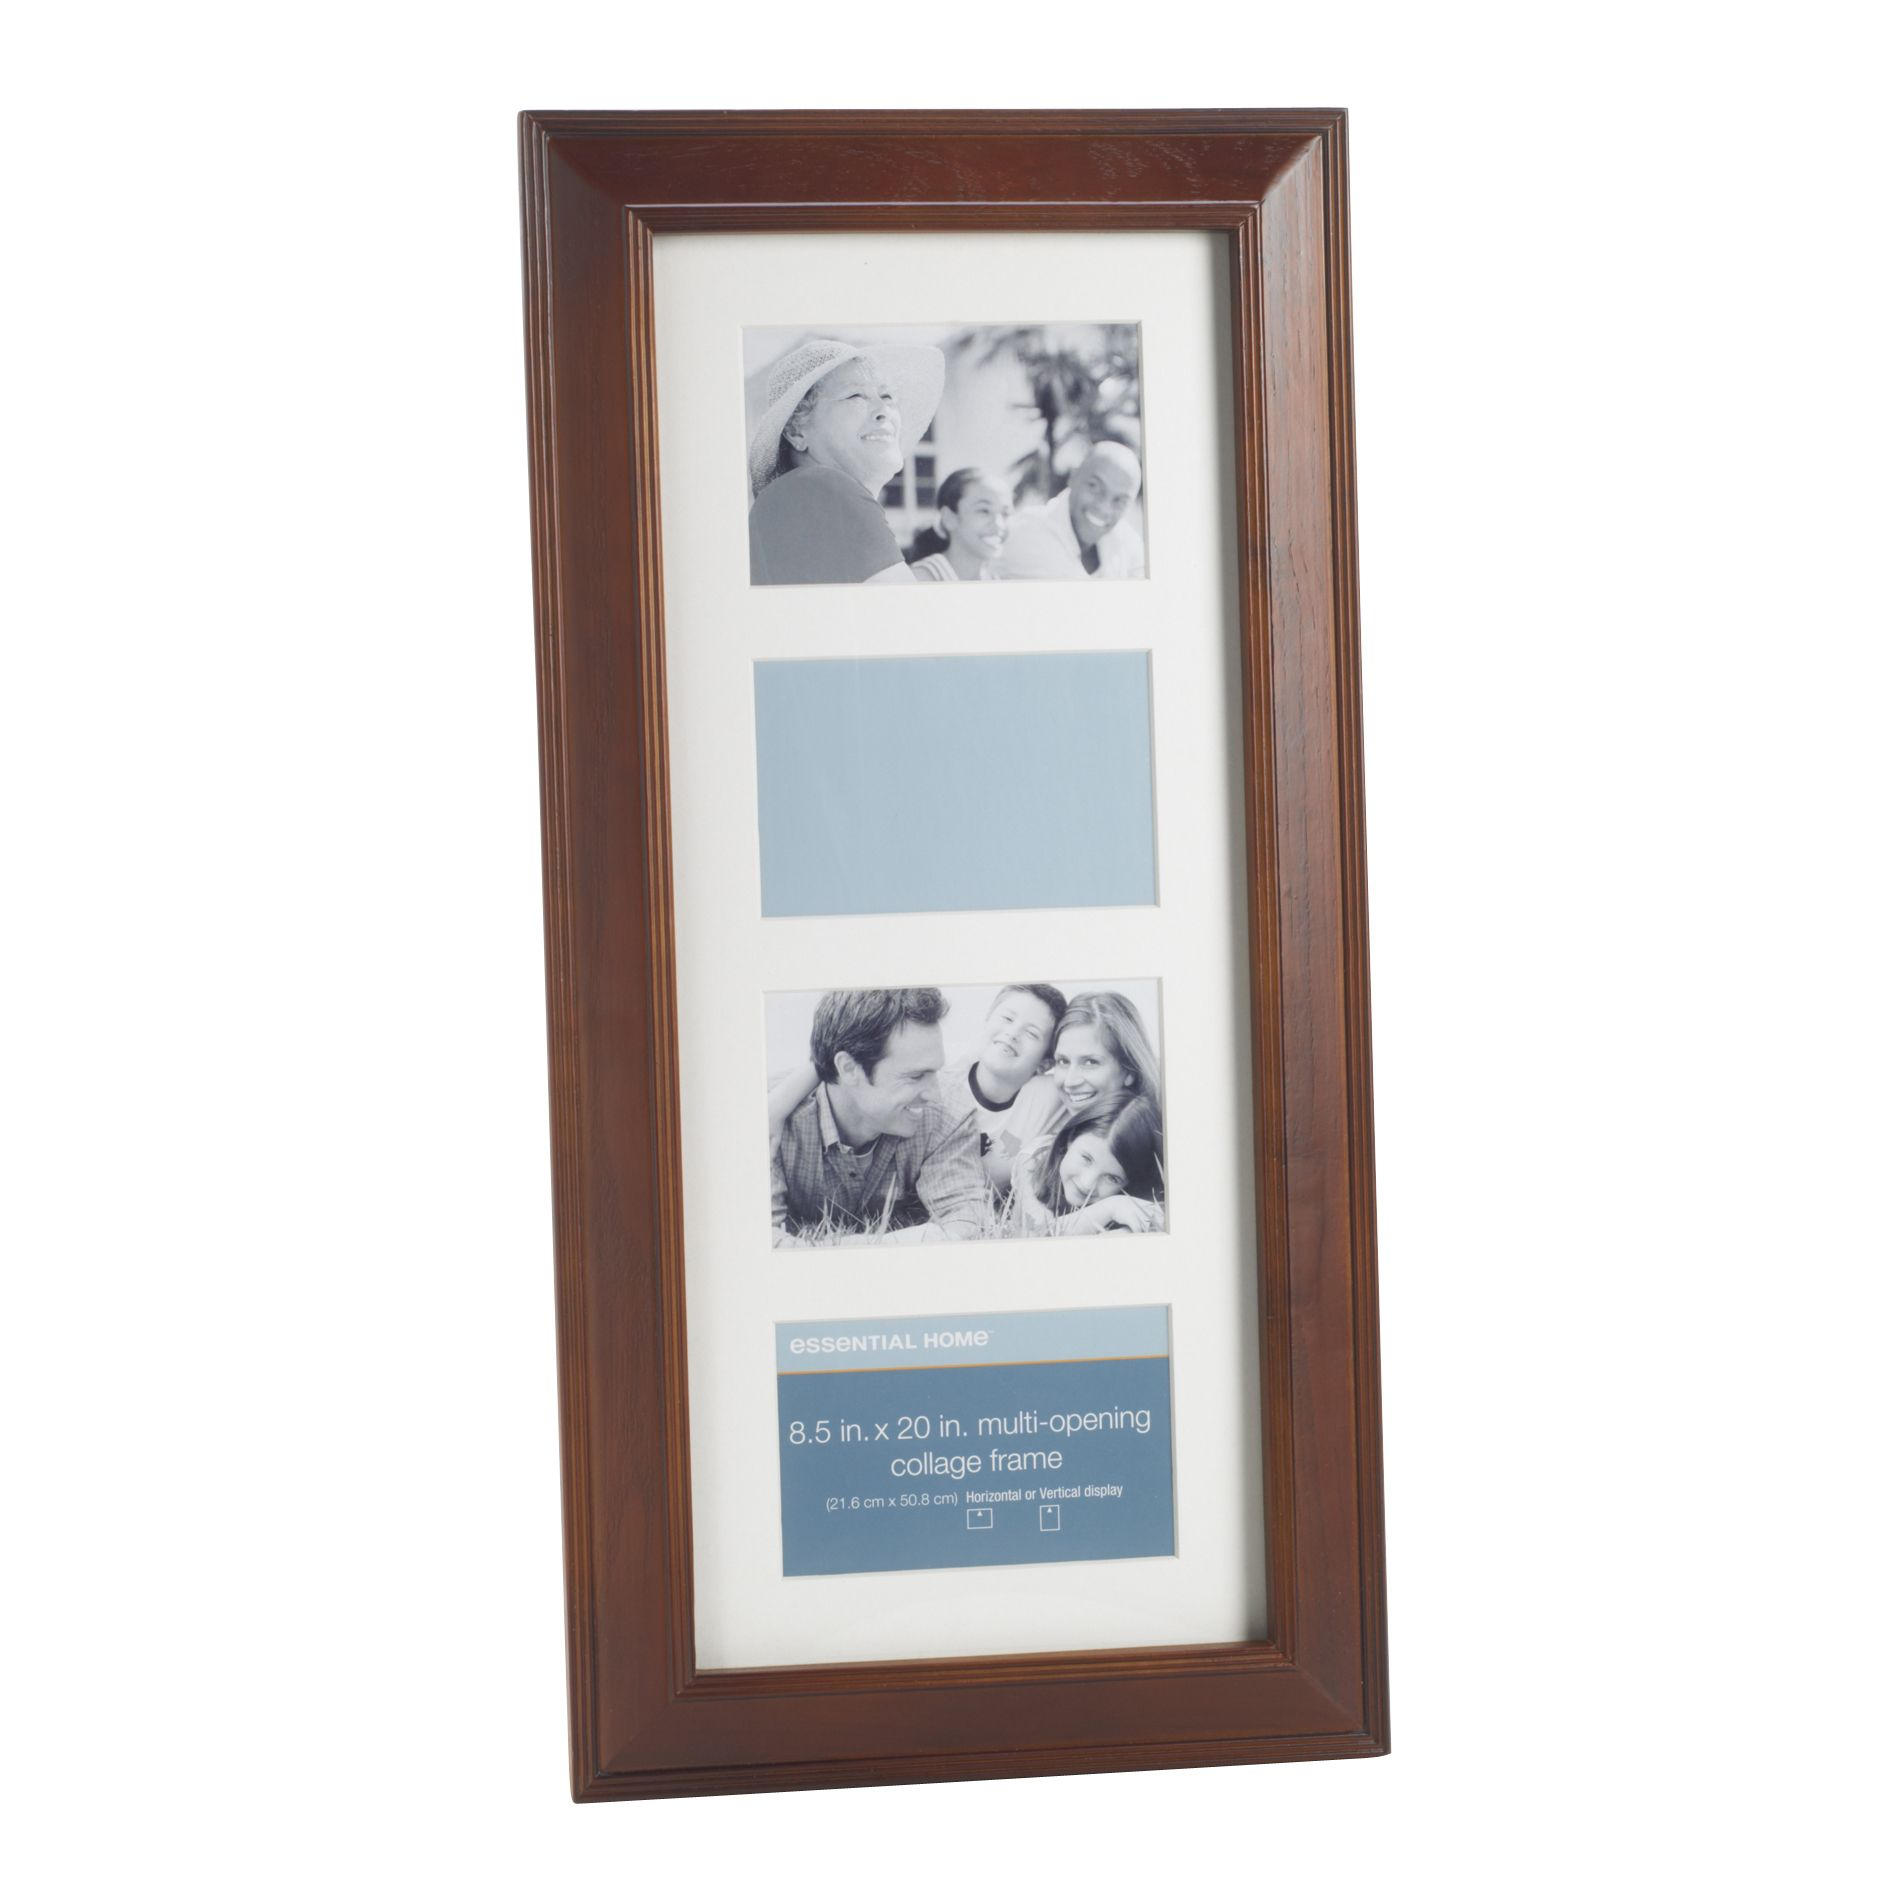 essential home walnut angled 8 5 x 20 inch multi opening collage picture frame. Black Bedroom Furniture Sets. Home Design Ideas